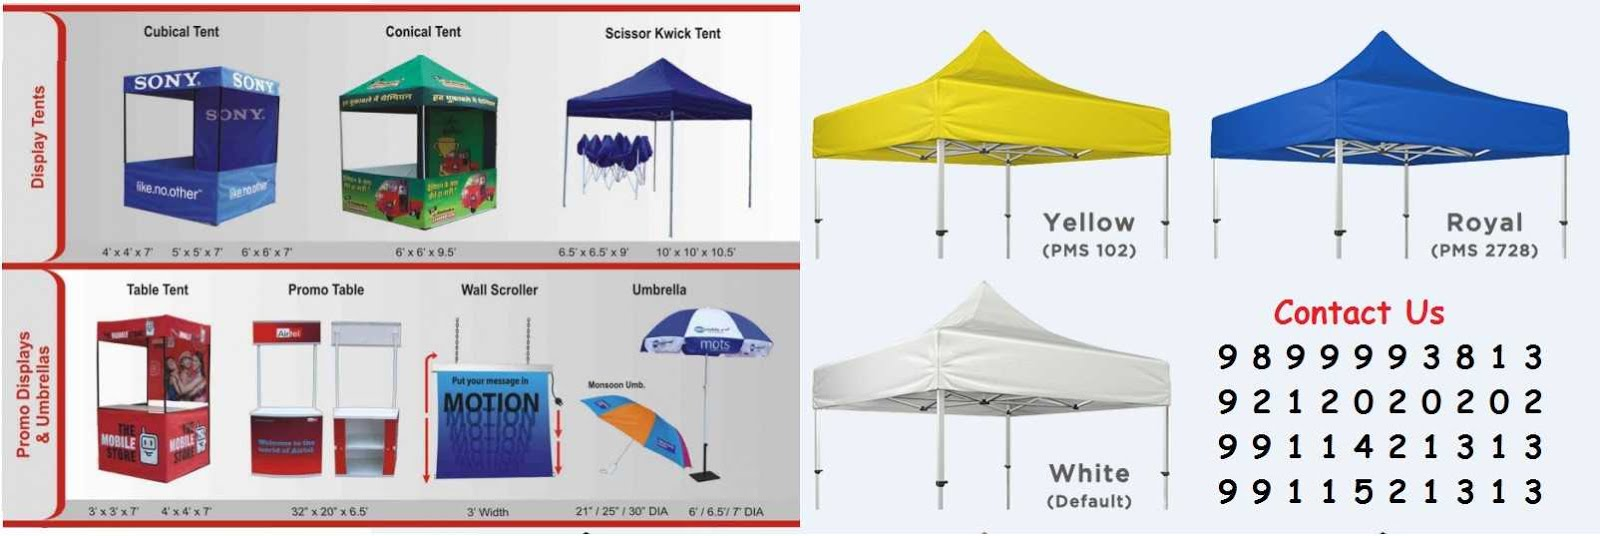 Outdoor Advertising Tent Canopies Manufacturers Delhi NCR Supply All Over India  sc 1 th 130 & Canopy Manufacturers Azad Market Advertising Canopy Tents ...